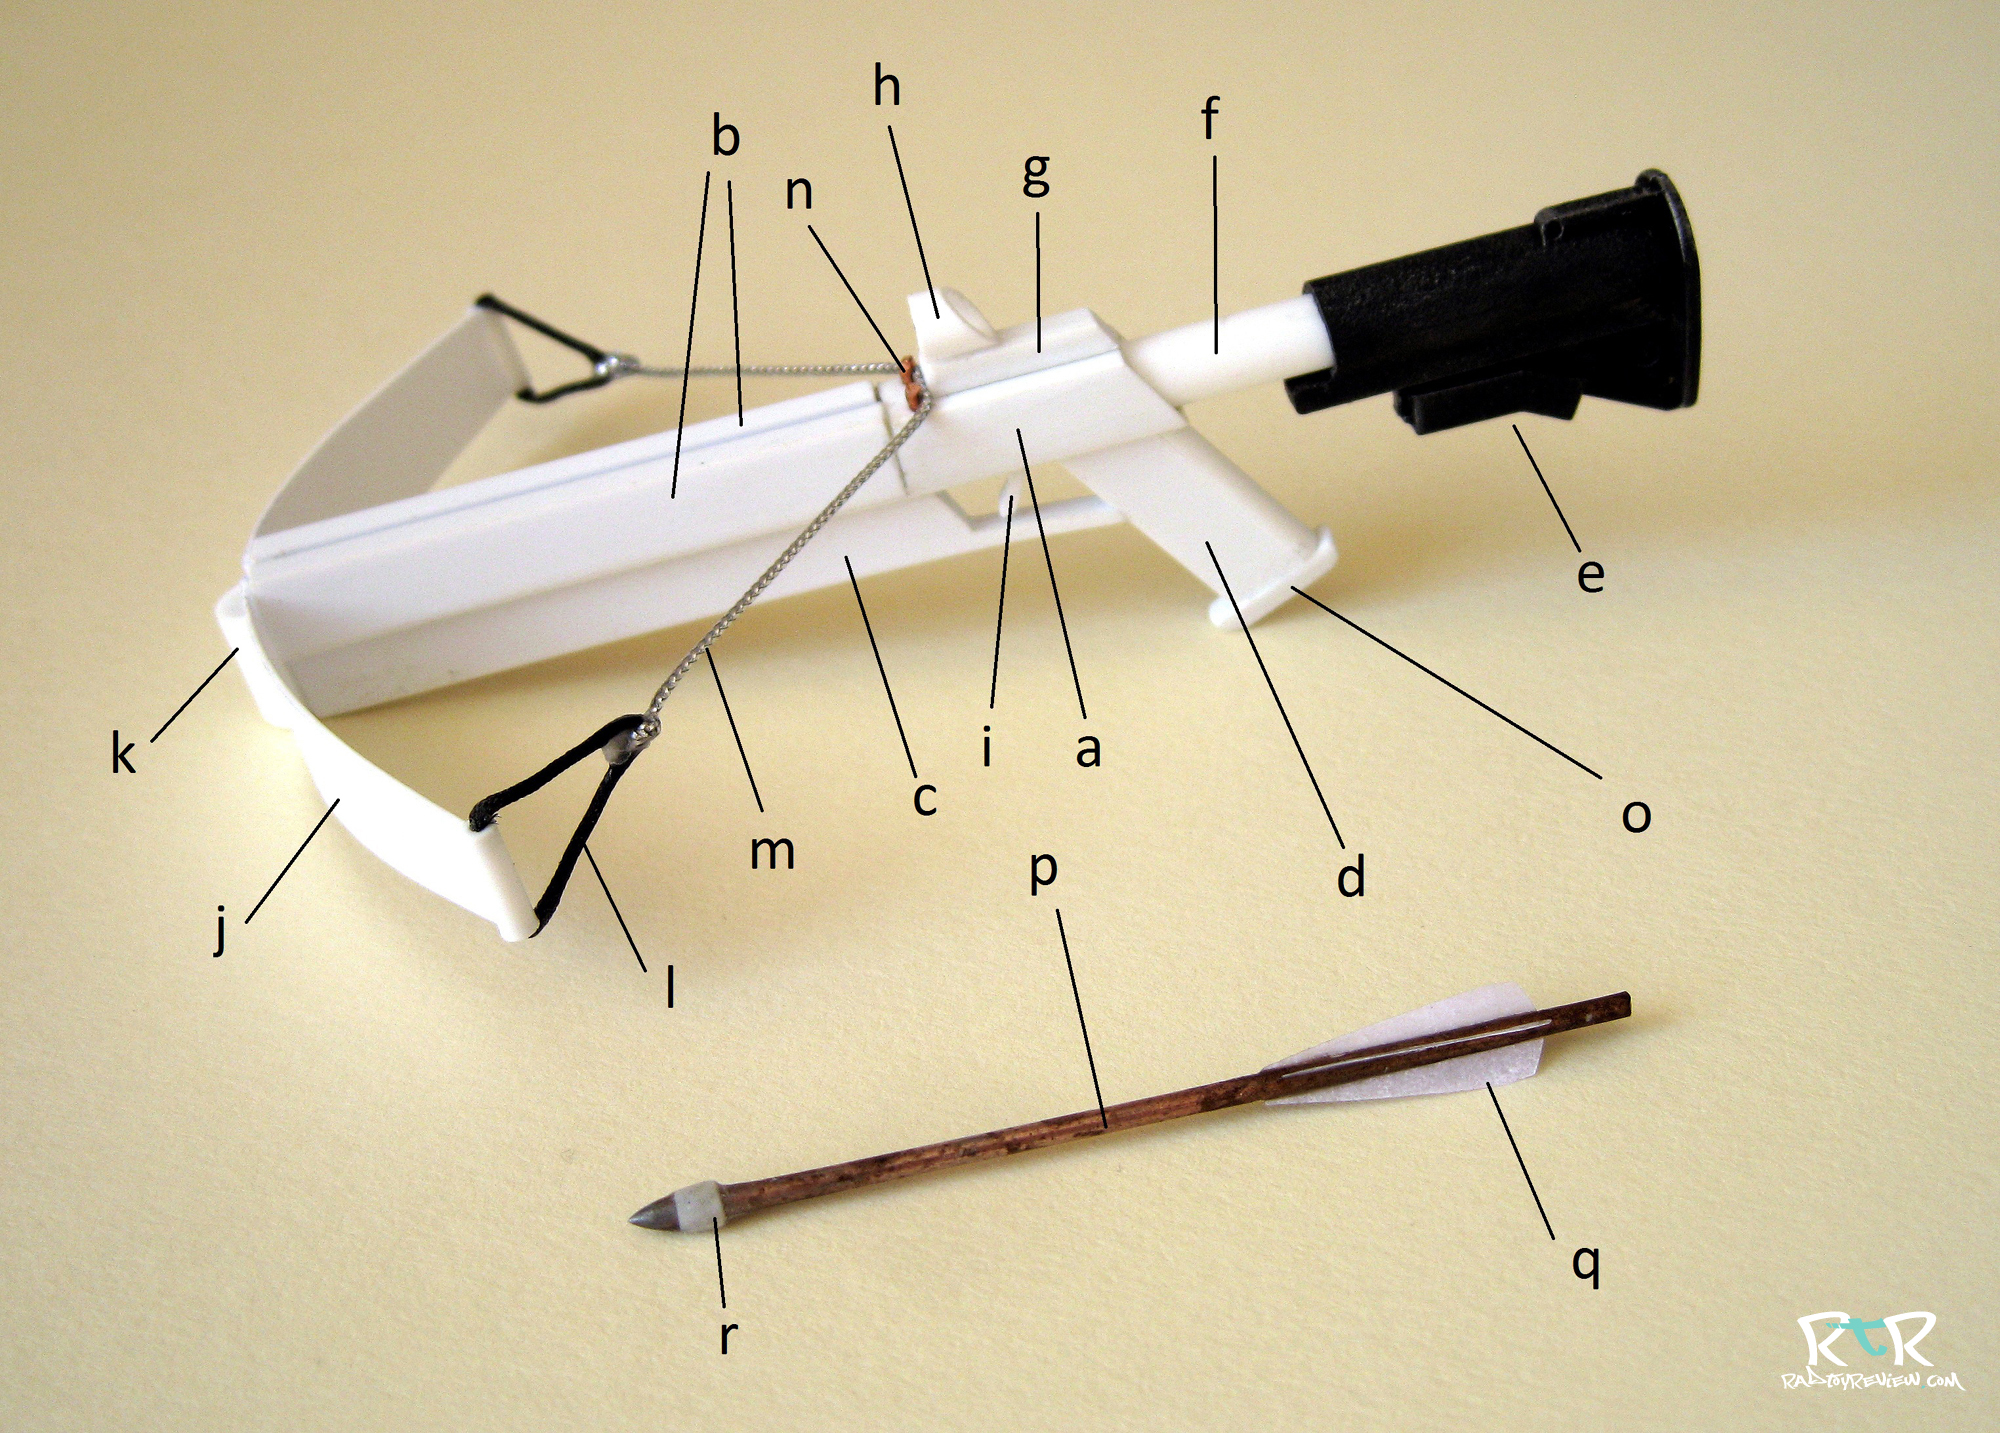 Homemade Crossbow Designs Pictures to Pin on Pinterest - PinsDaddy